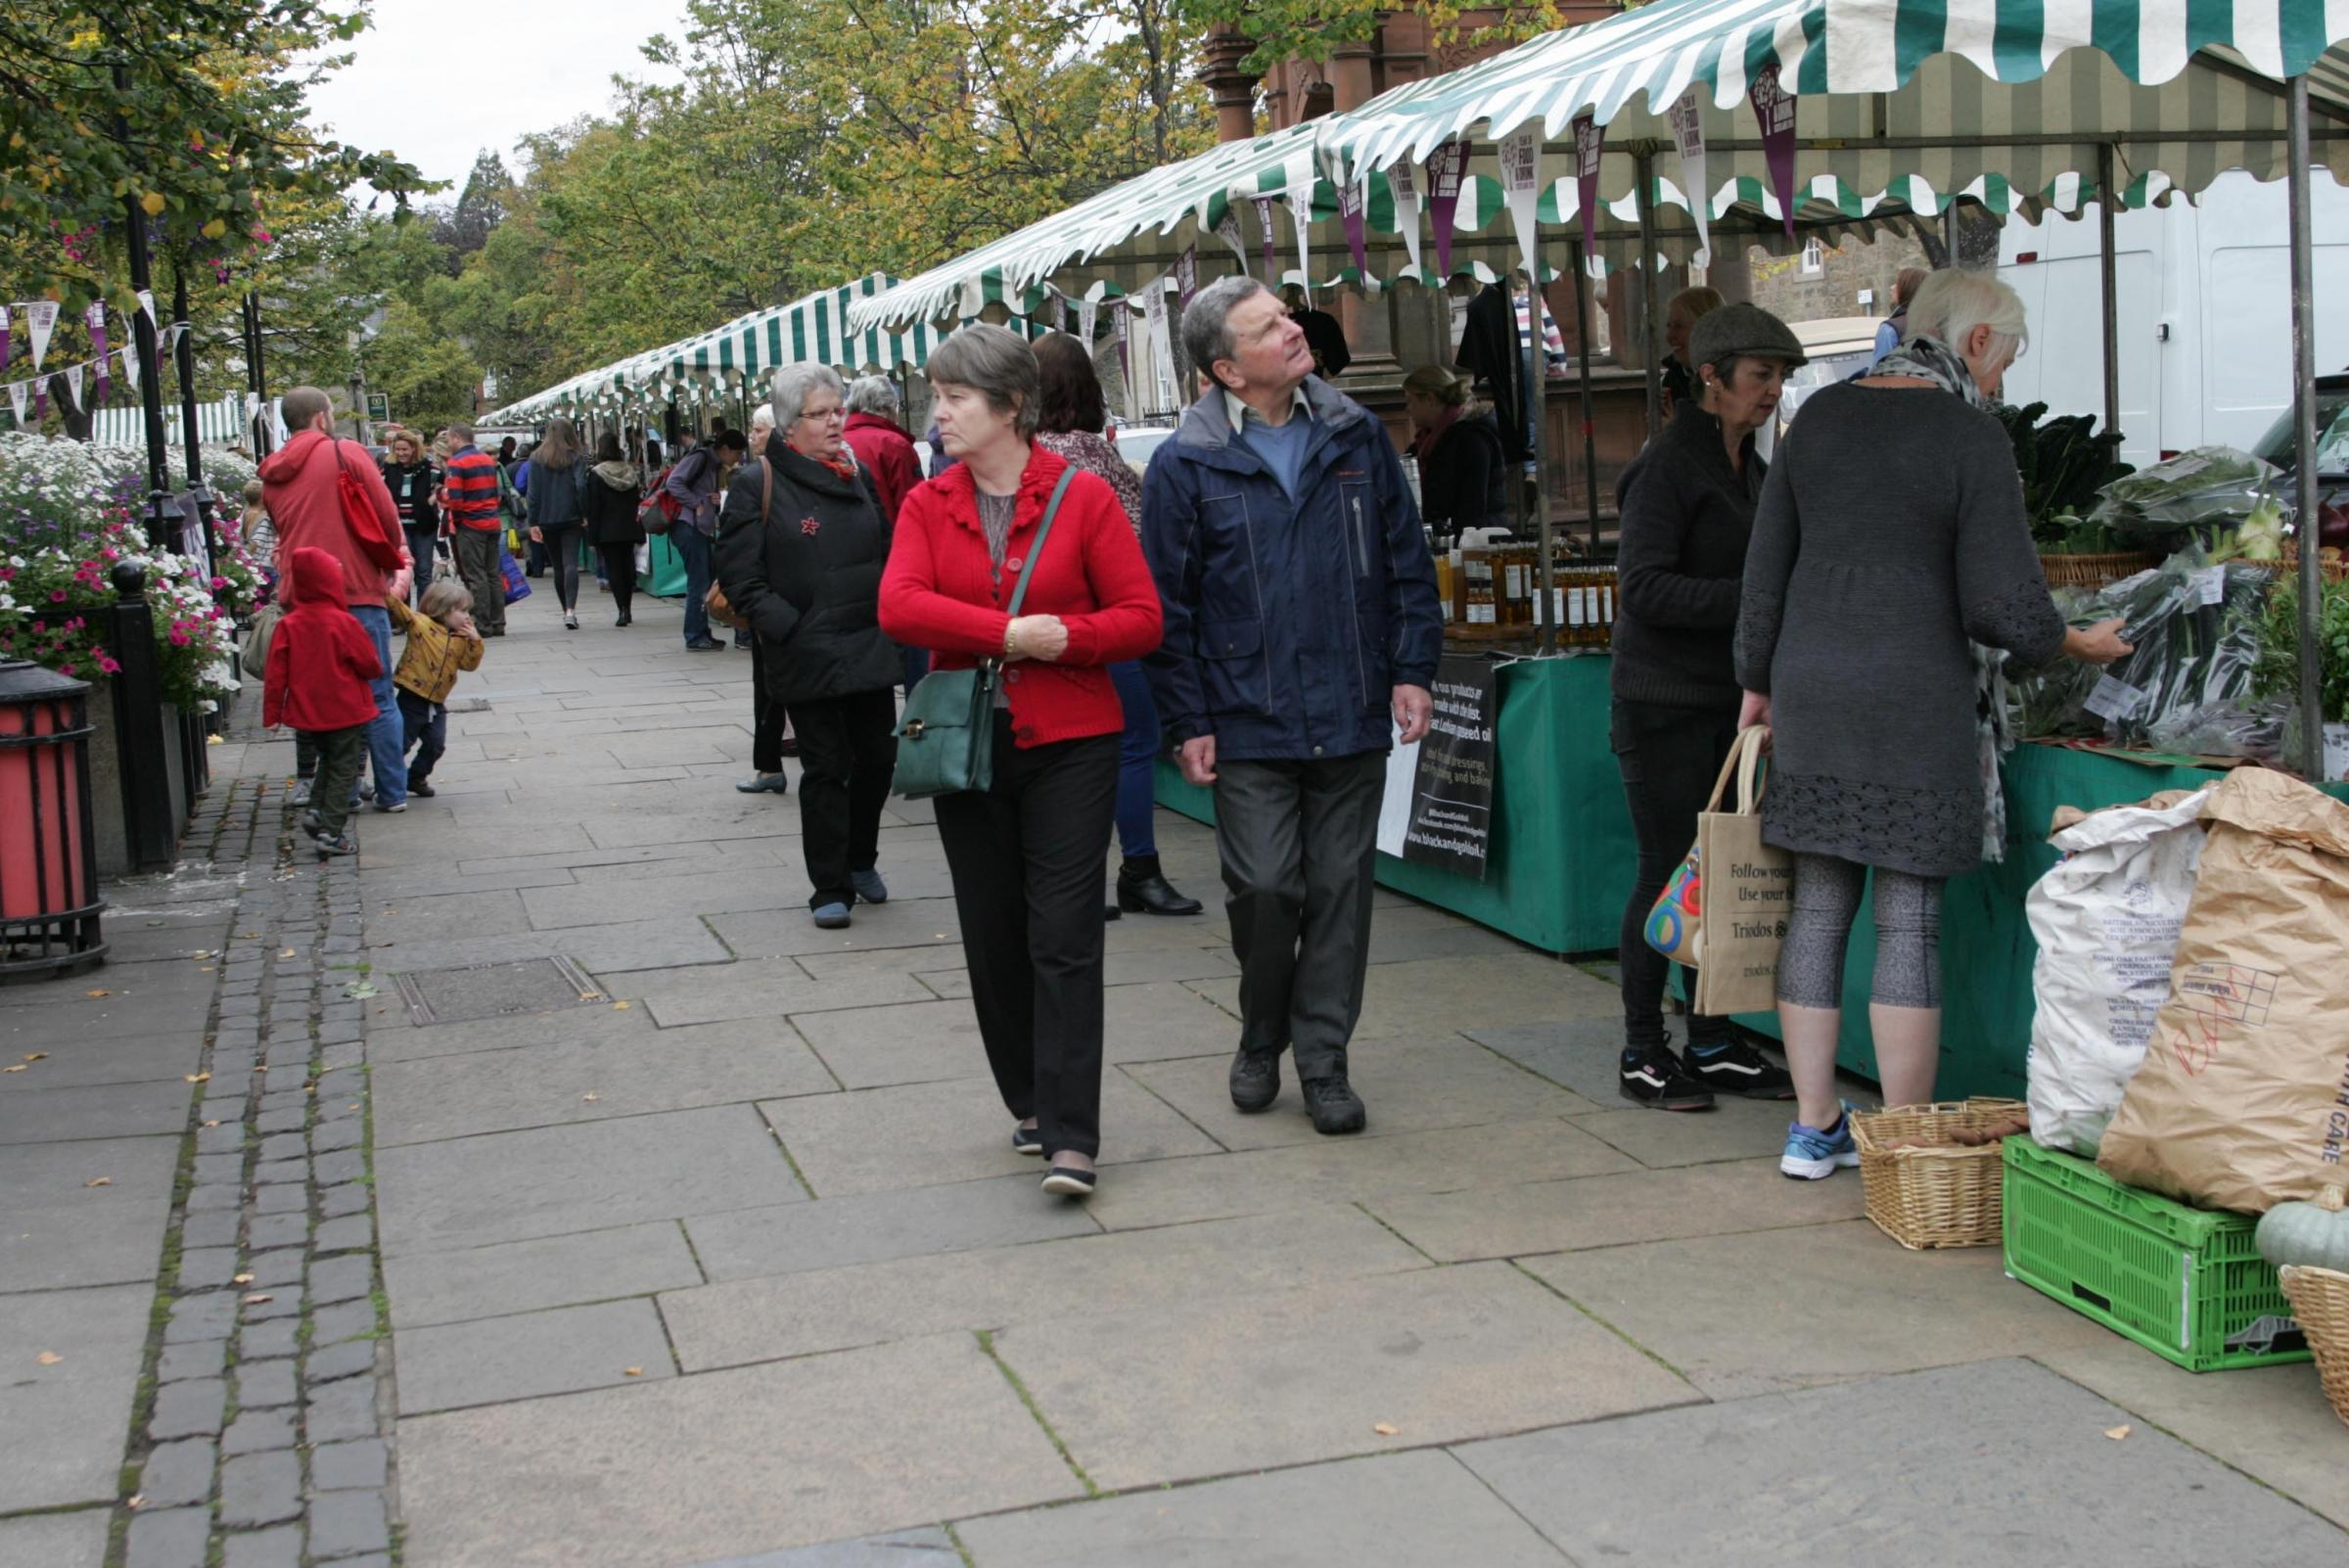 Haddington Farmers Market.